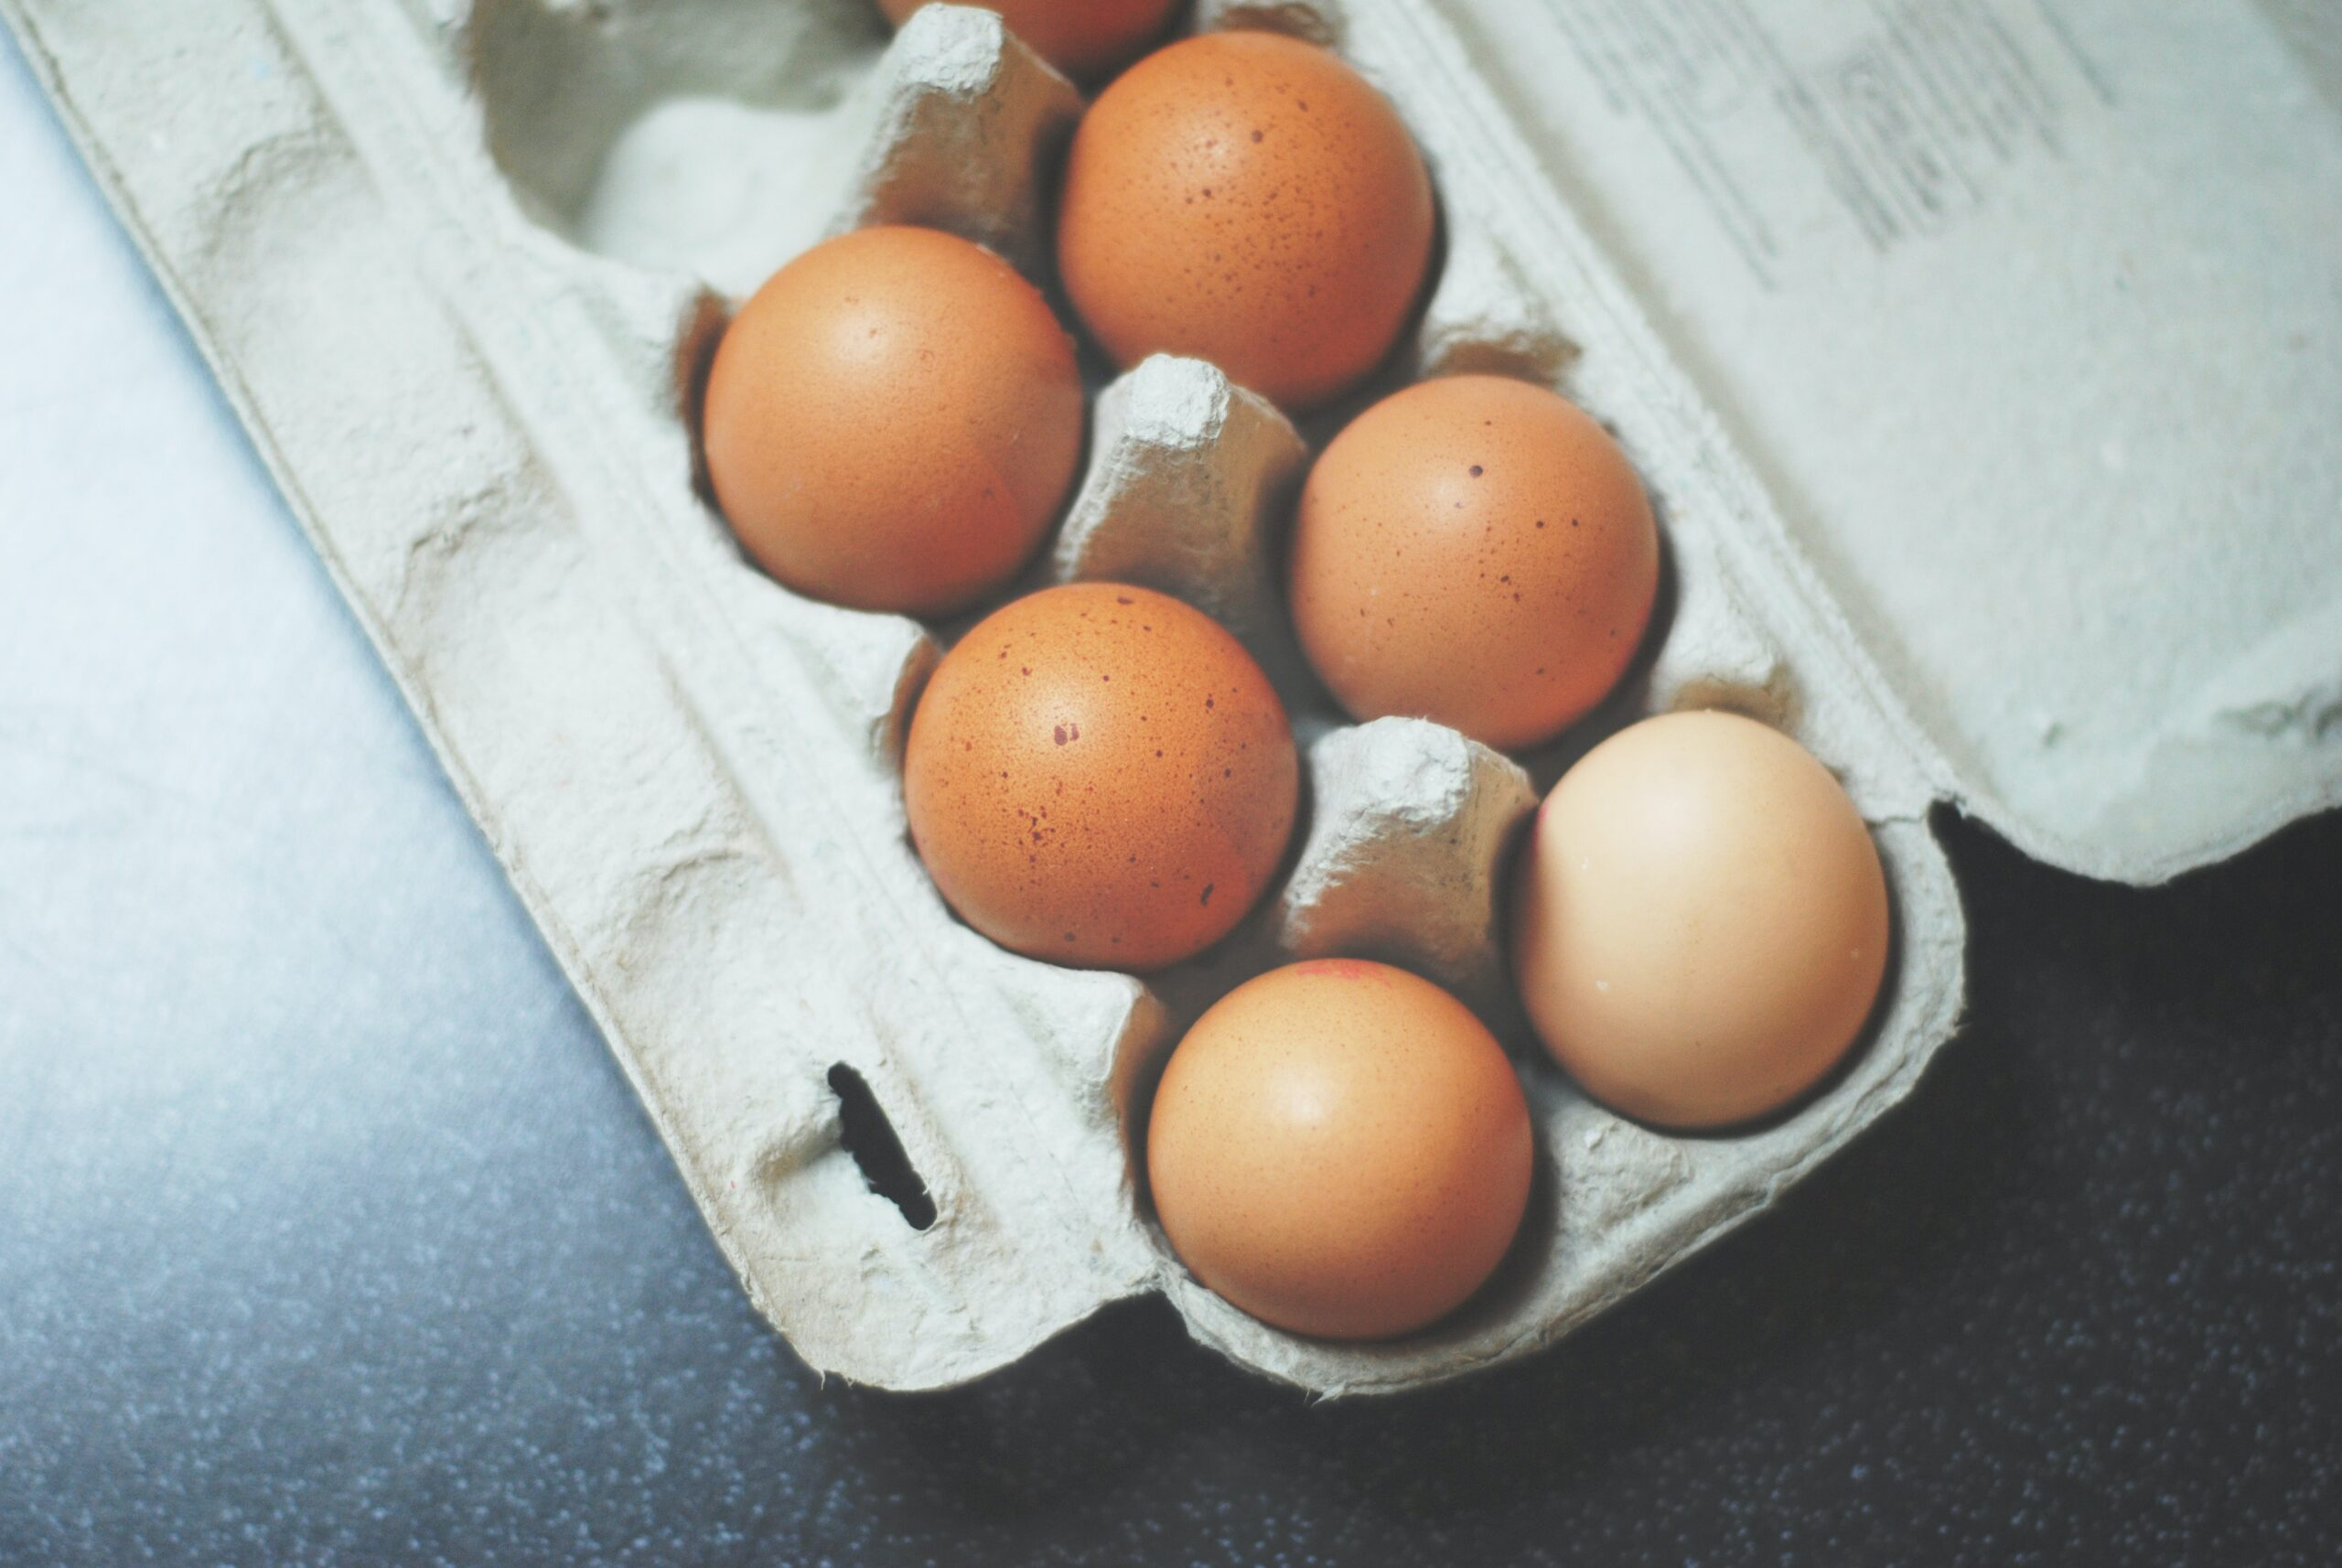 Myths about protein busted